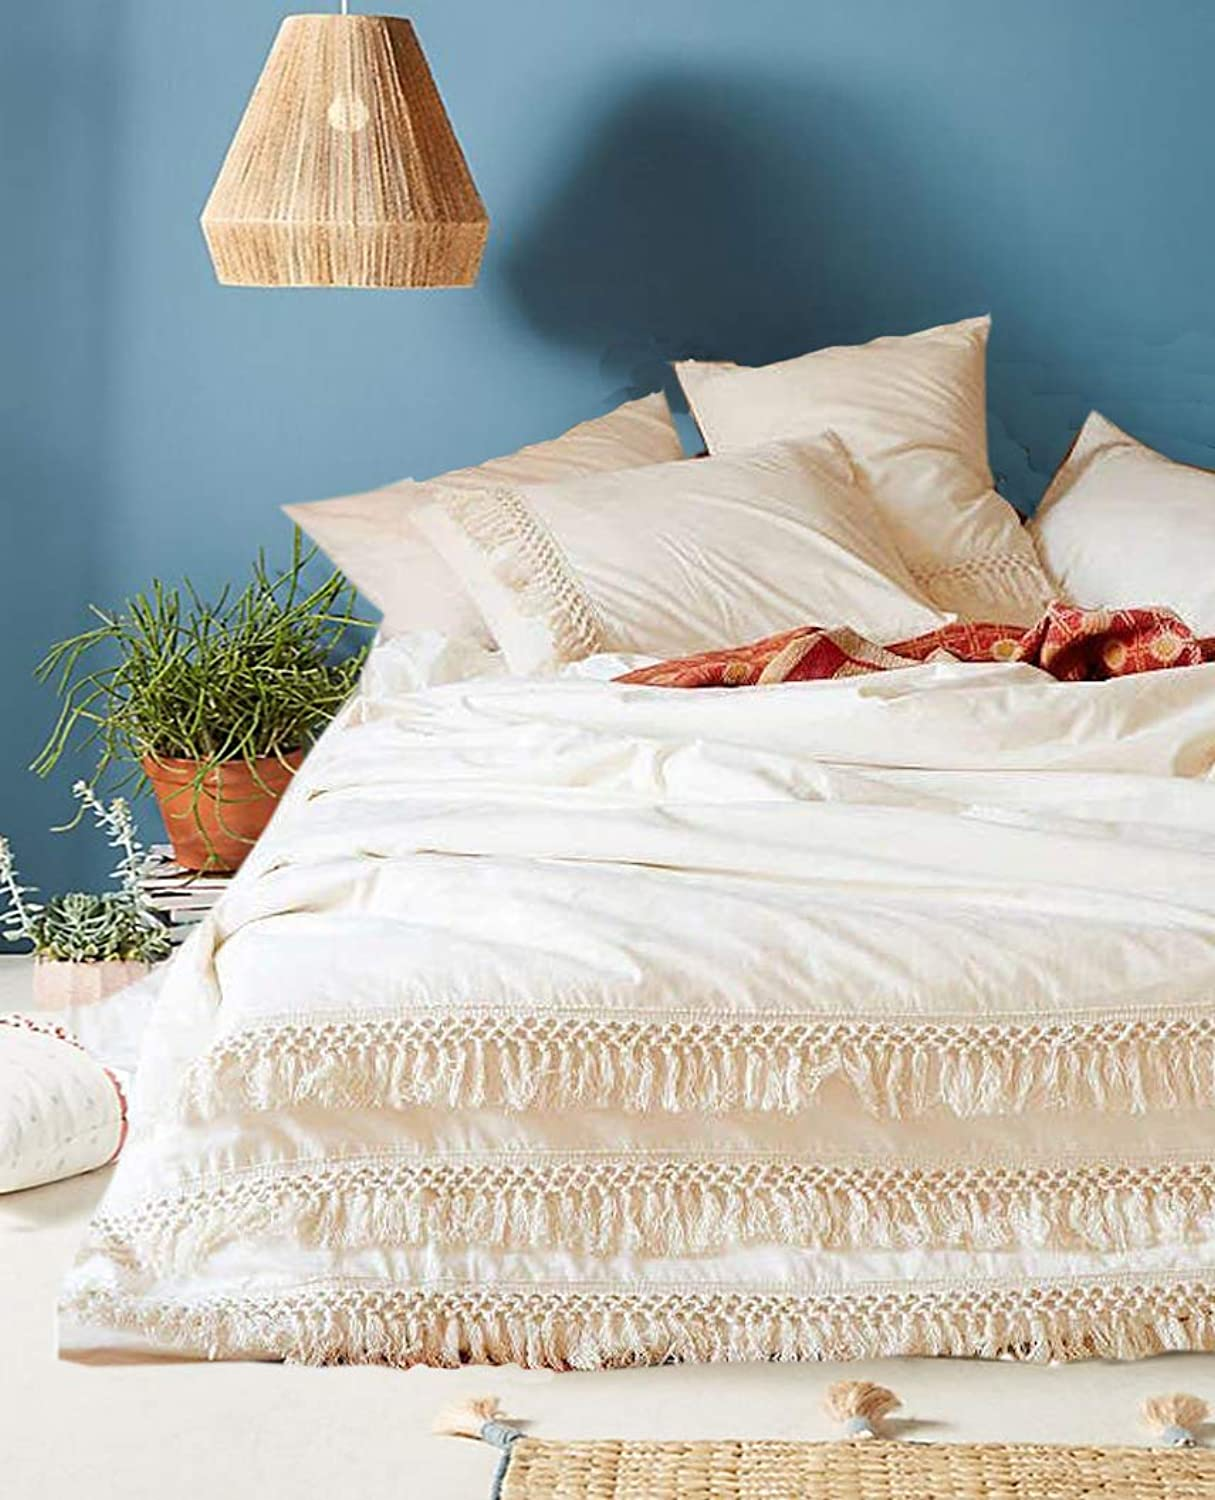 Flber White Cotton Tassel Duvet Cover,Full Queen,86inx90in